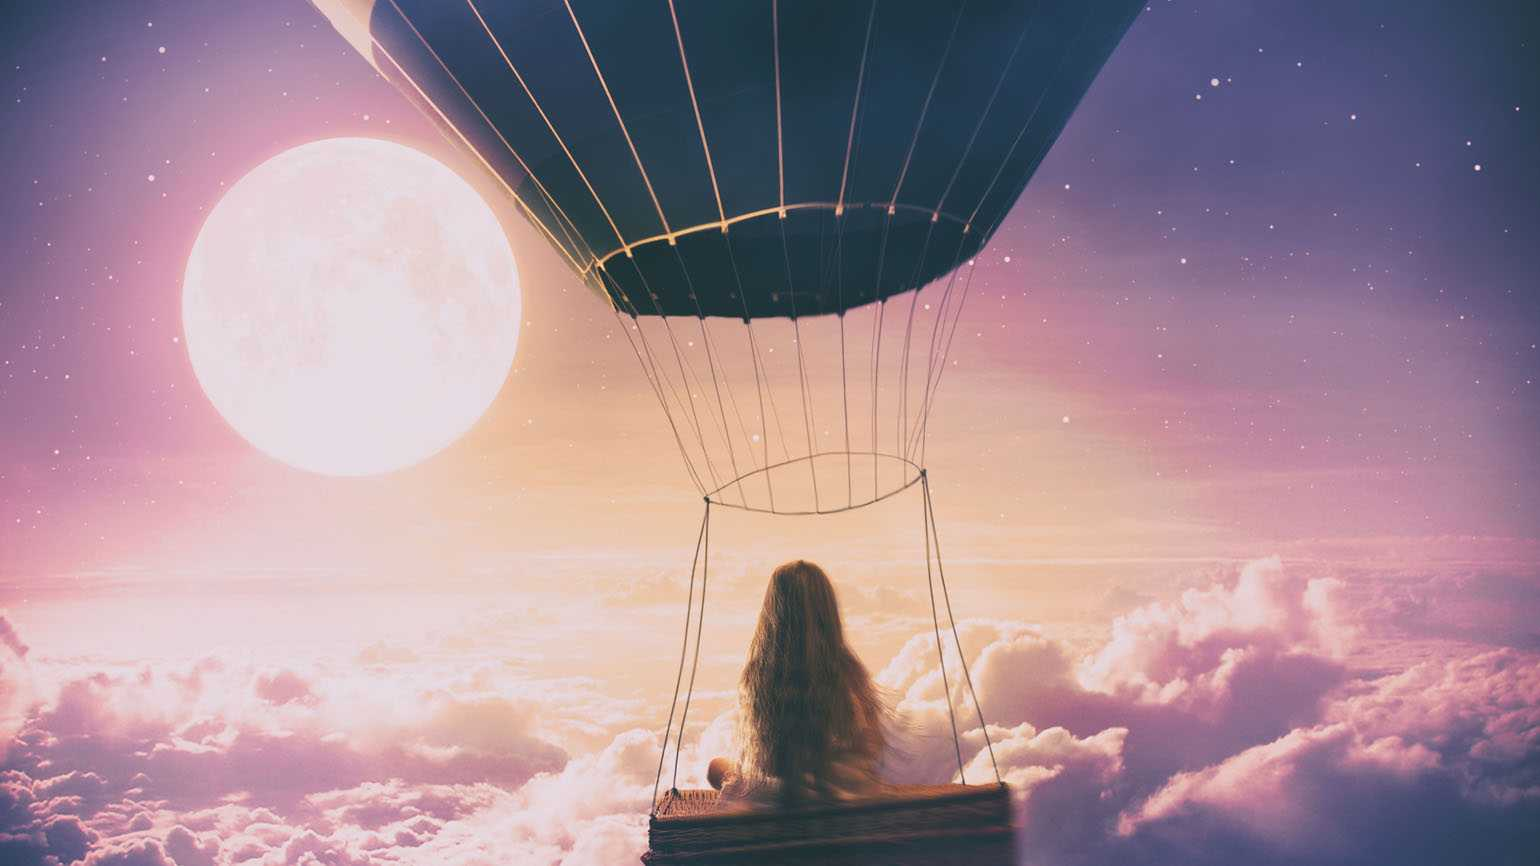 Young girl in a hot air balloon above clouds; Getty Images